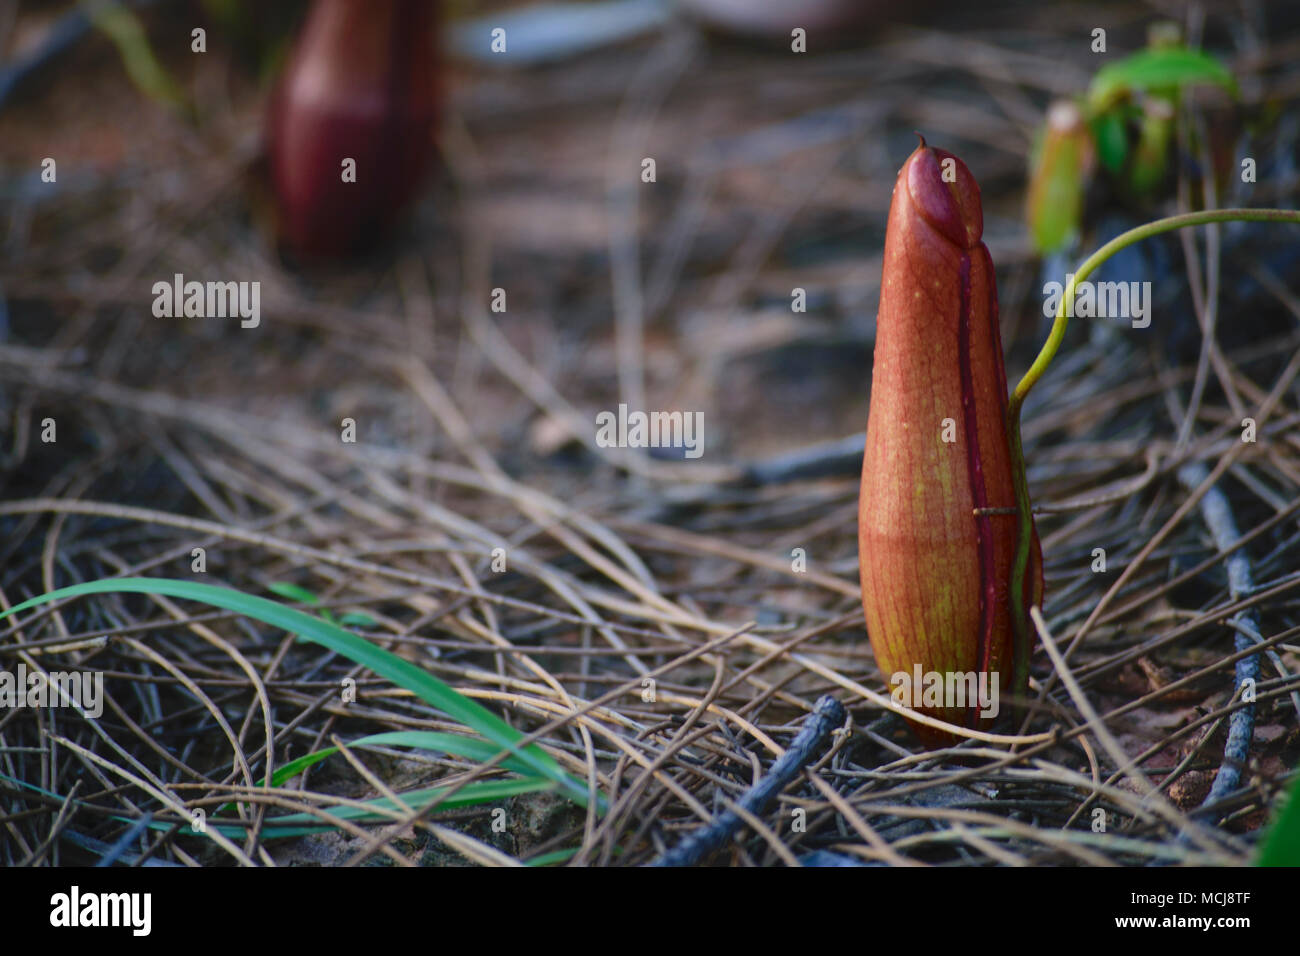 wild plants of Nephentes (tropical pitcher plants) at Indonesia - Stock Image